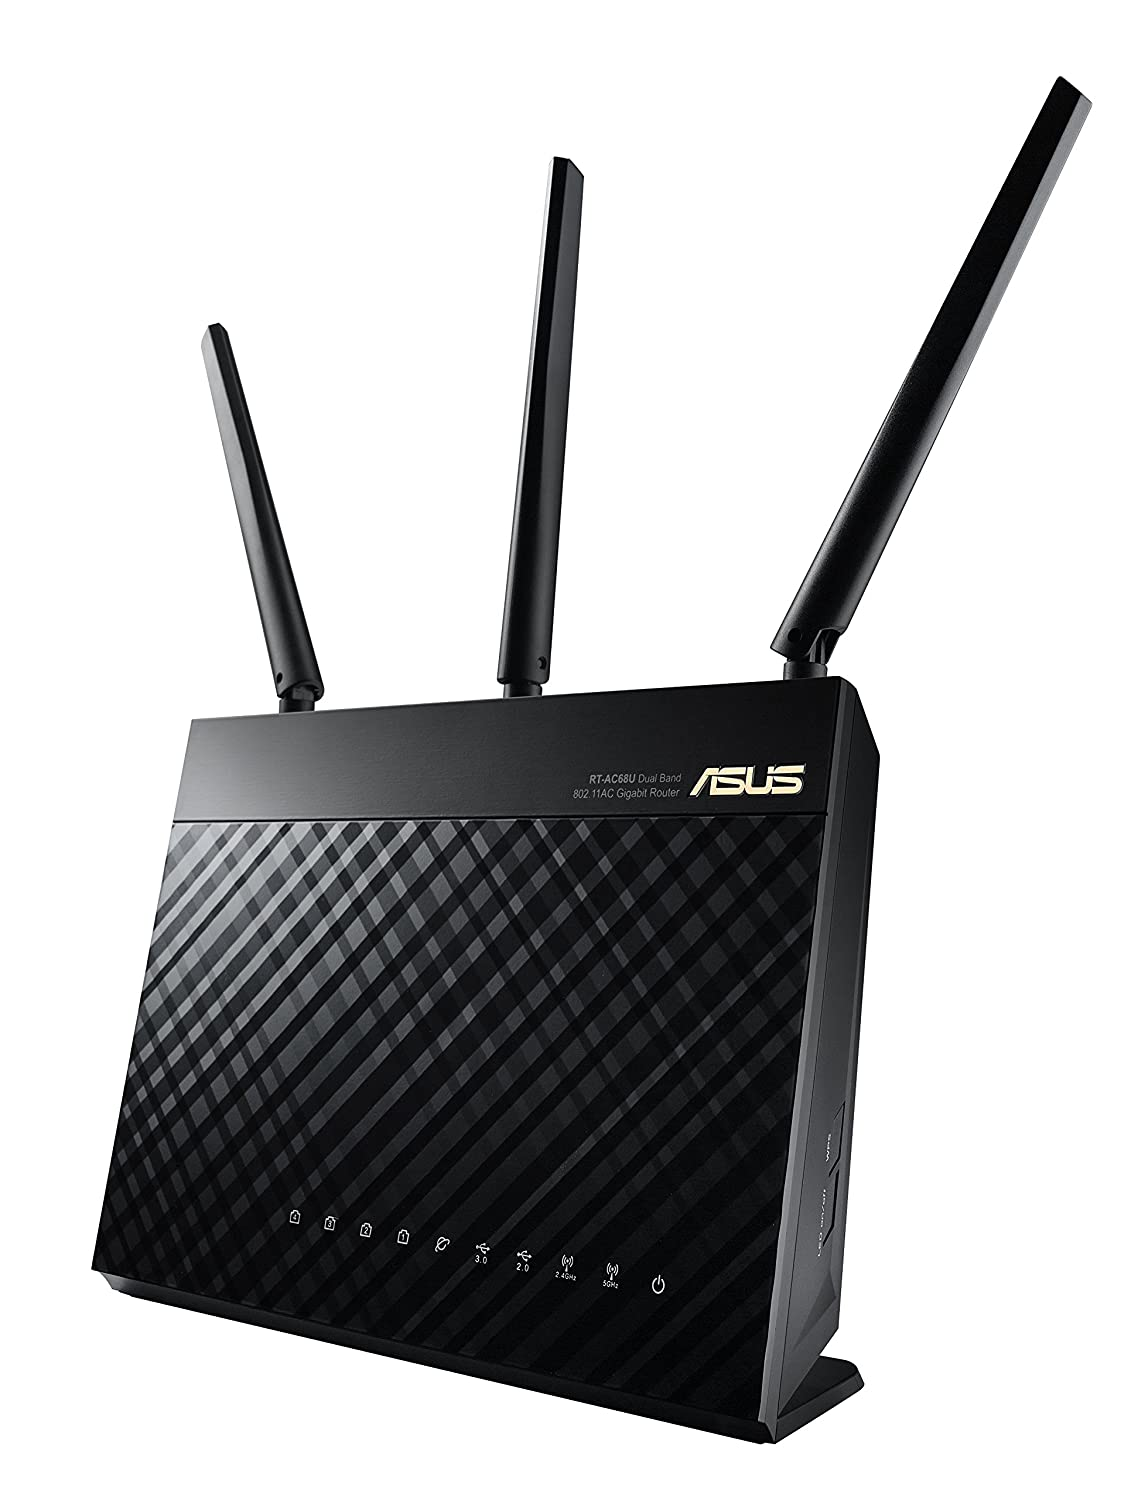 Asus Rt Ac68u Ac1900 Dual Band Gigabit Wireless Router Ai Mesh Nas Setup Wired Network Diagram Access Point Mode Twin Usb 30 For Media Server 3g 4g Dongle Support